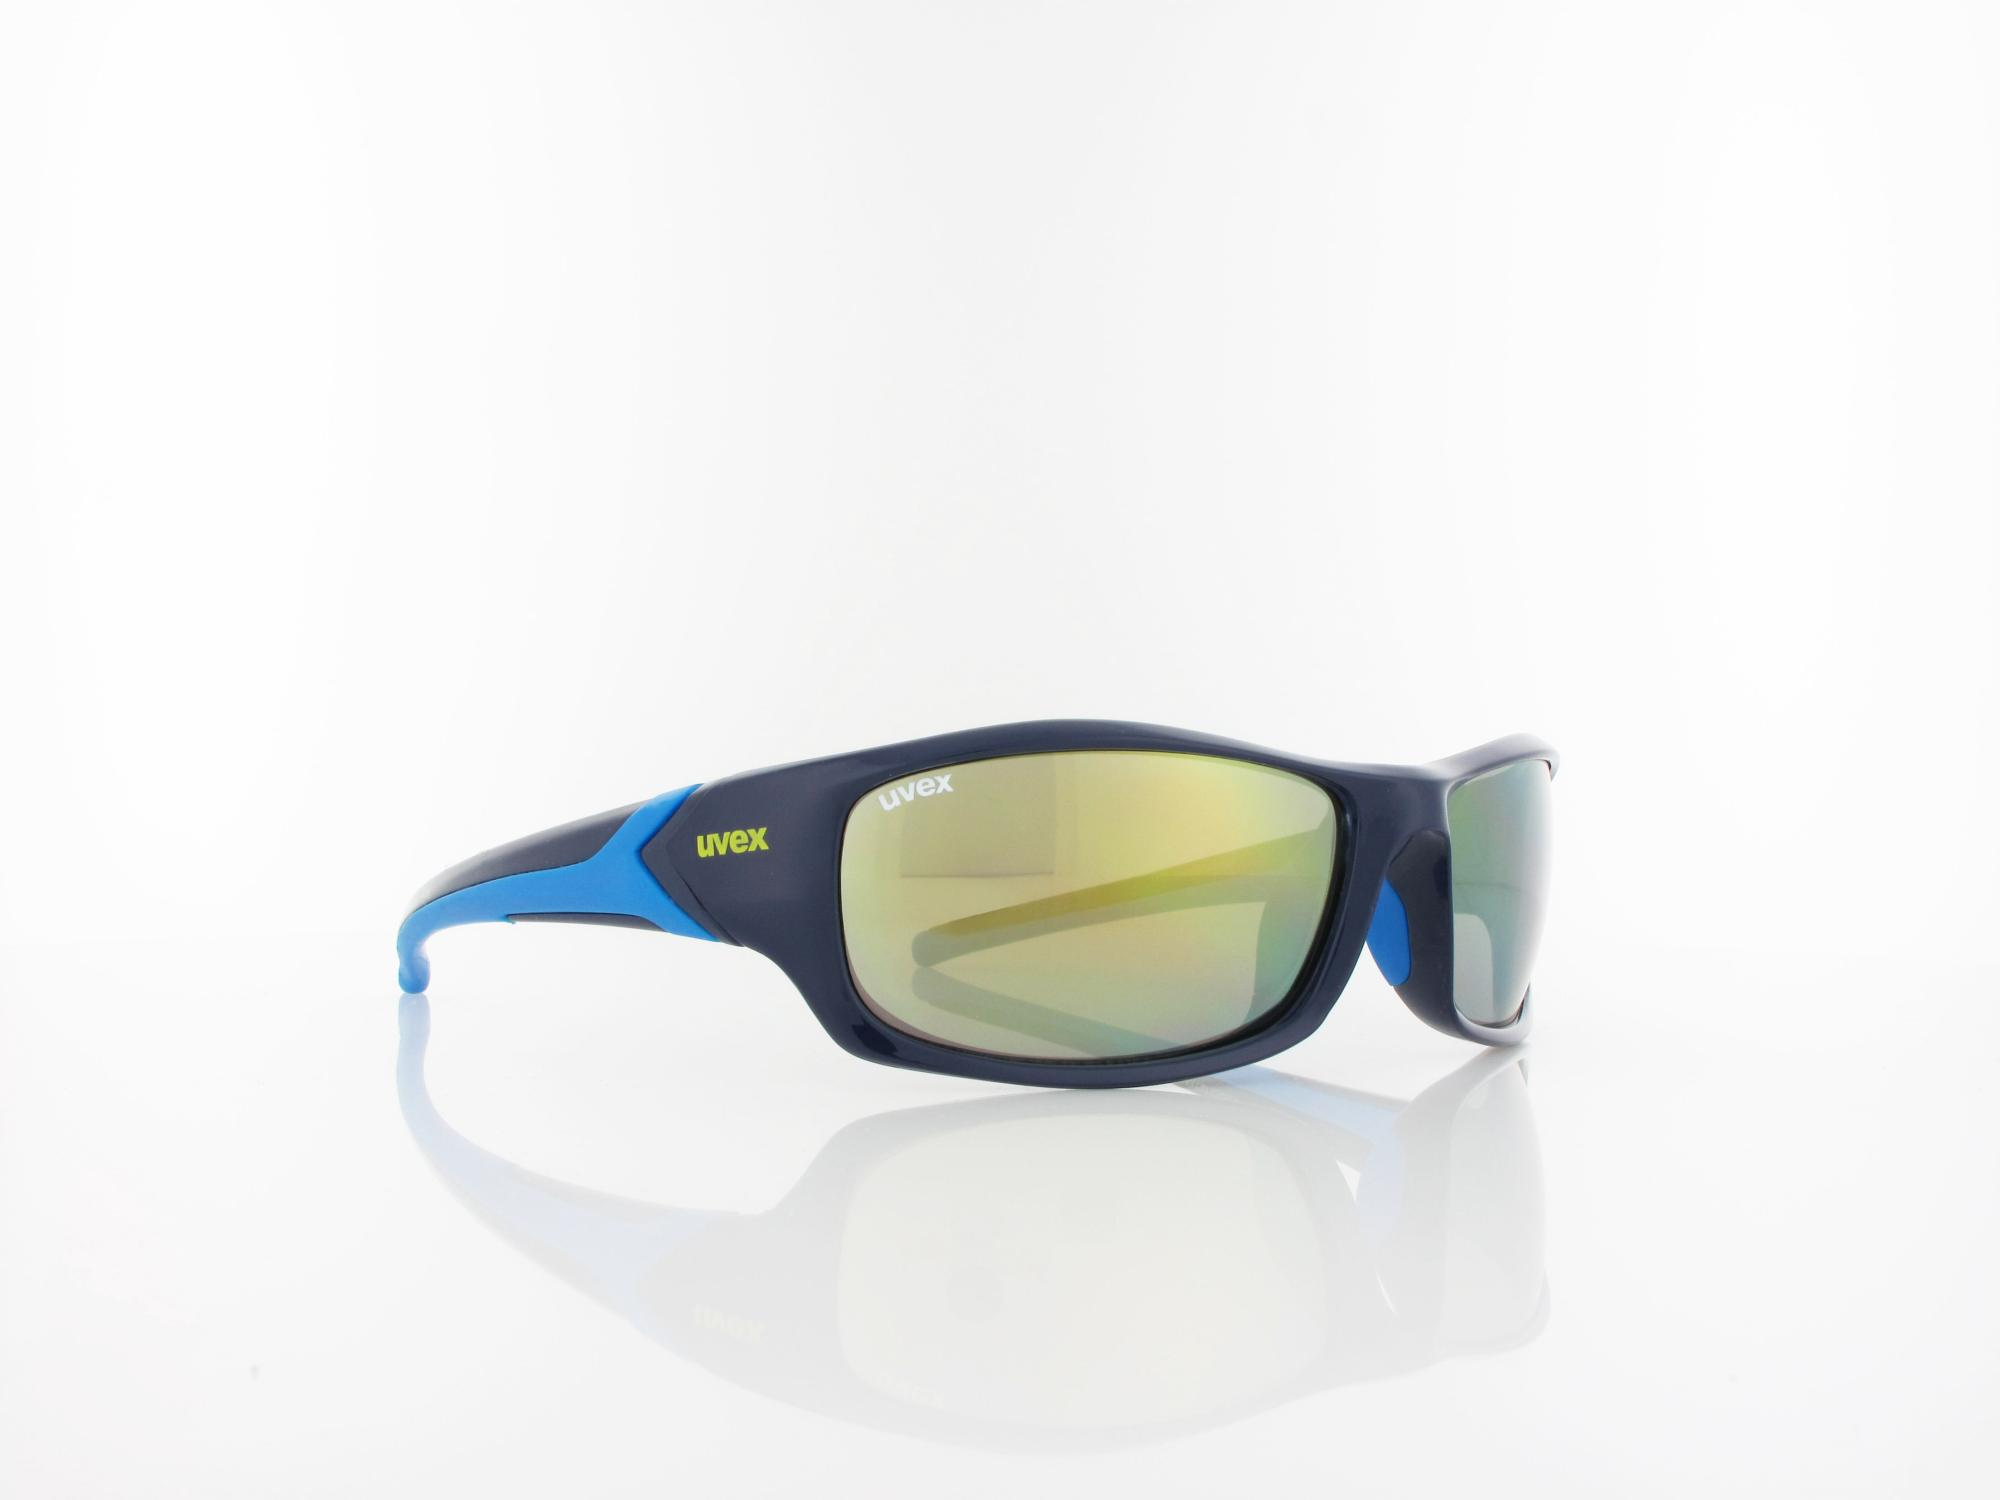 UVEX | sportstyle 211 S530613 4416 64 | blue / mirror yellow